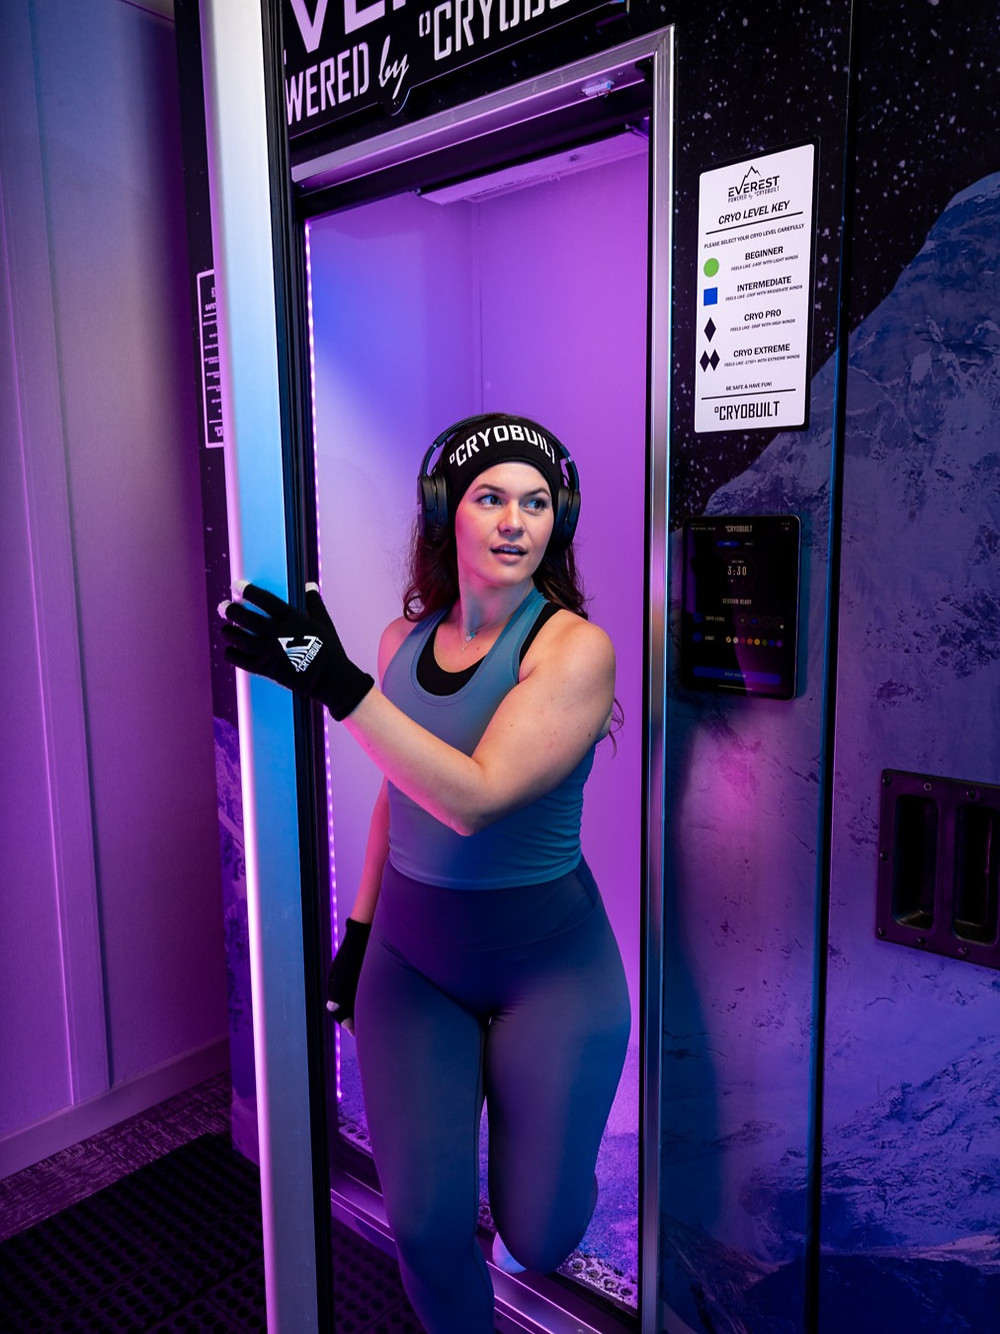 girl, walking out, cryotherapy chamber, headband, gloves, purple tint